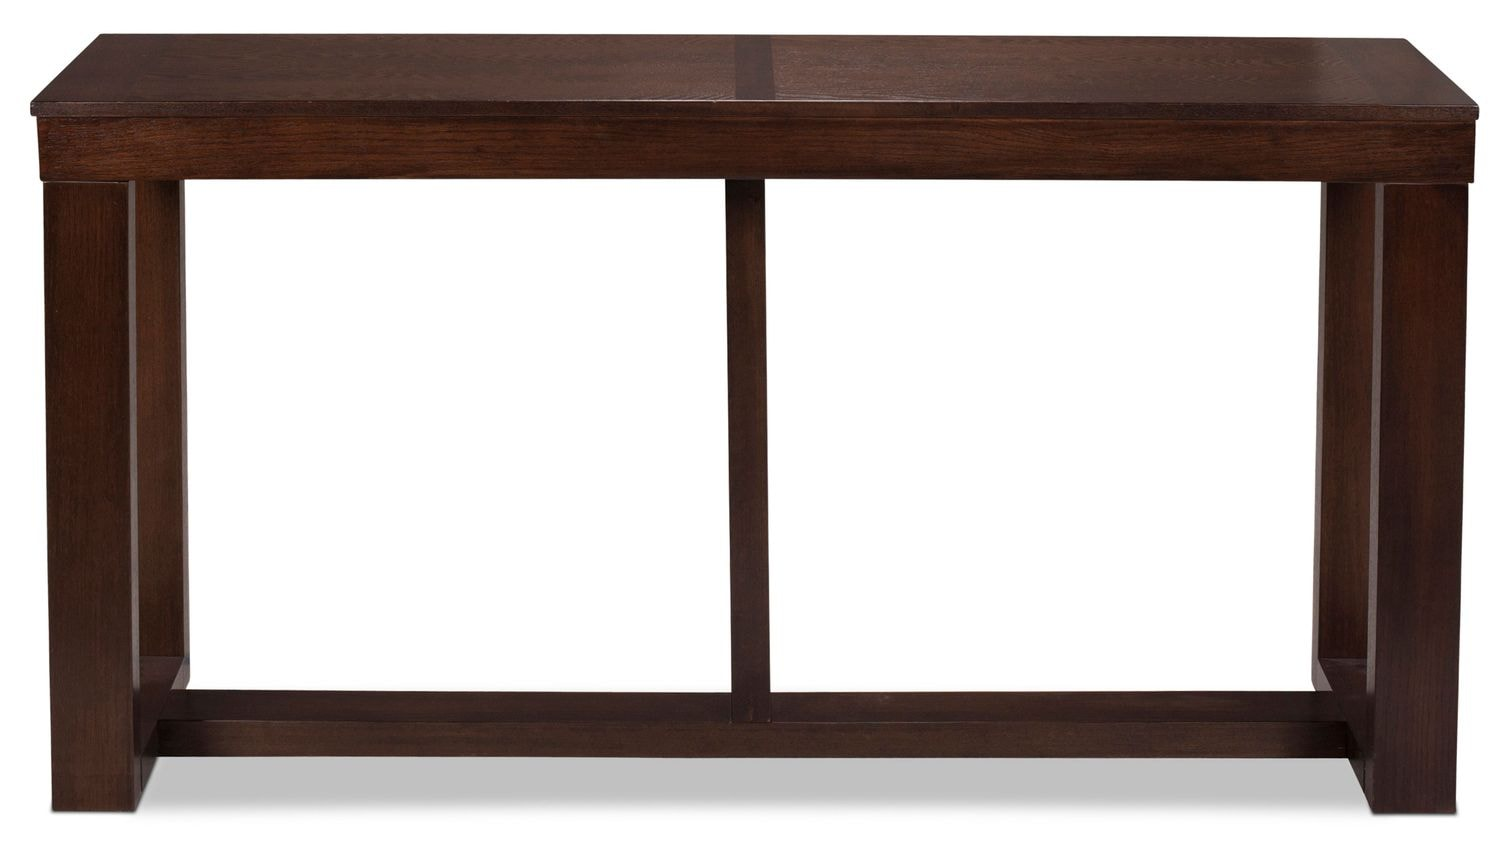 Accent and Occasional Furniture - Monterey Sofa Table - Dark Brown